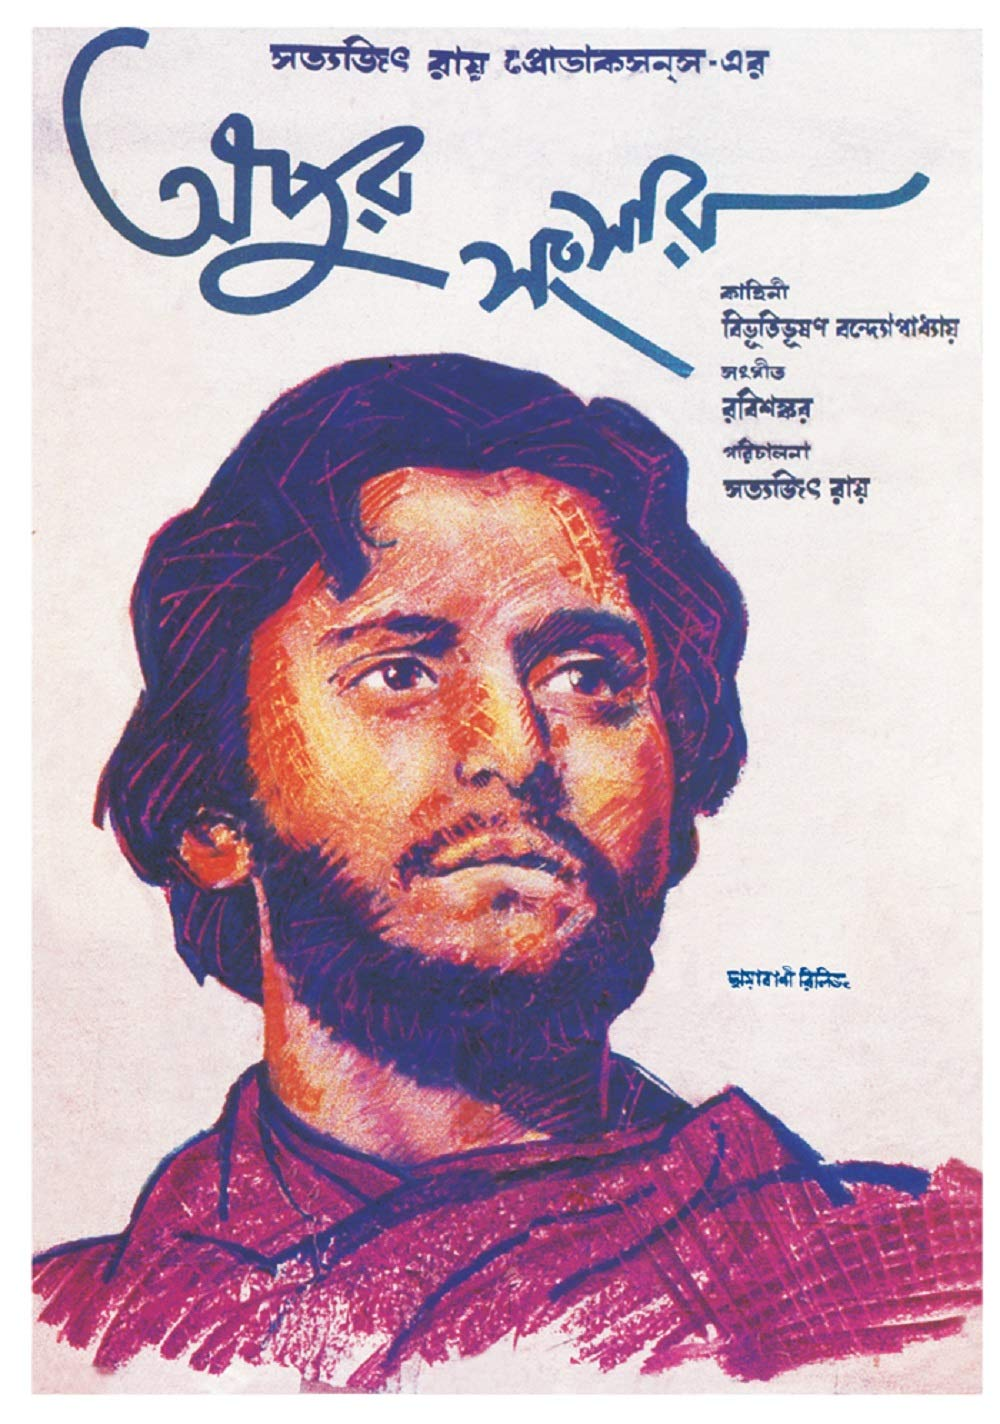 The Colors of Art Satyajit Ray's Apur Sansar Poster in Bengali (Paper, Multicolour): Amazon.in: Home & Kitchen